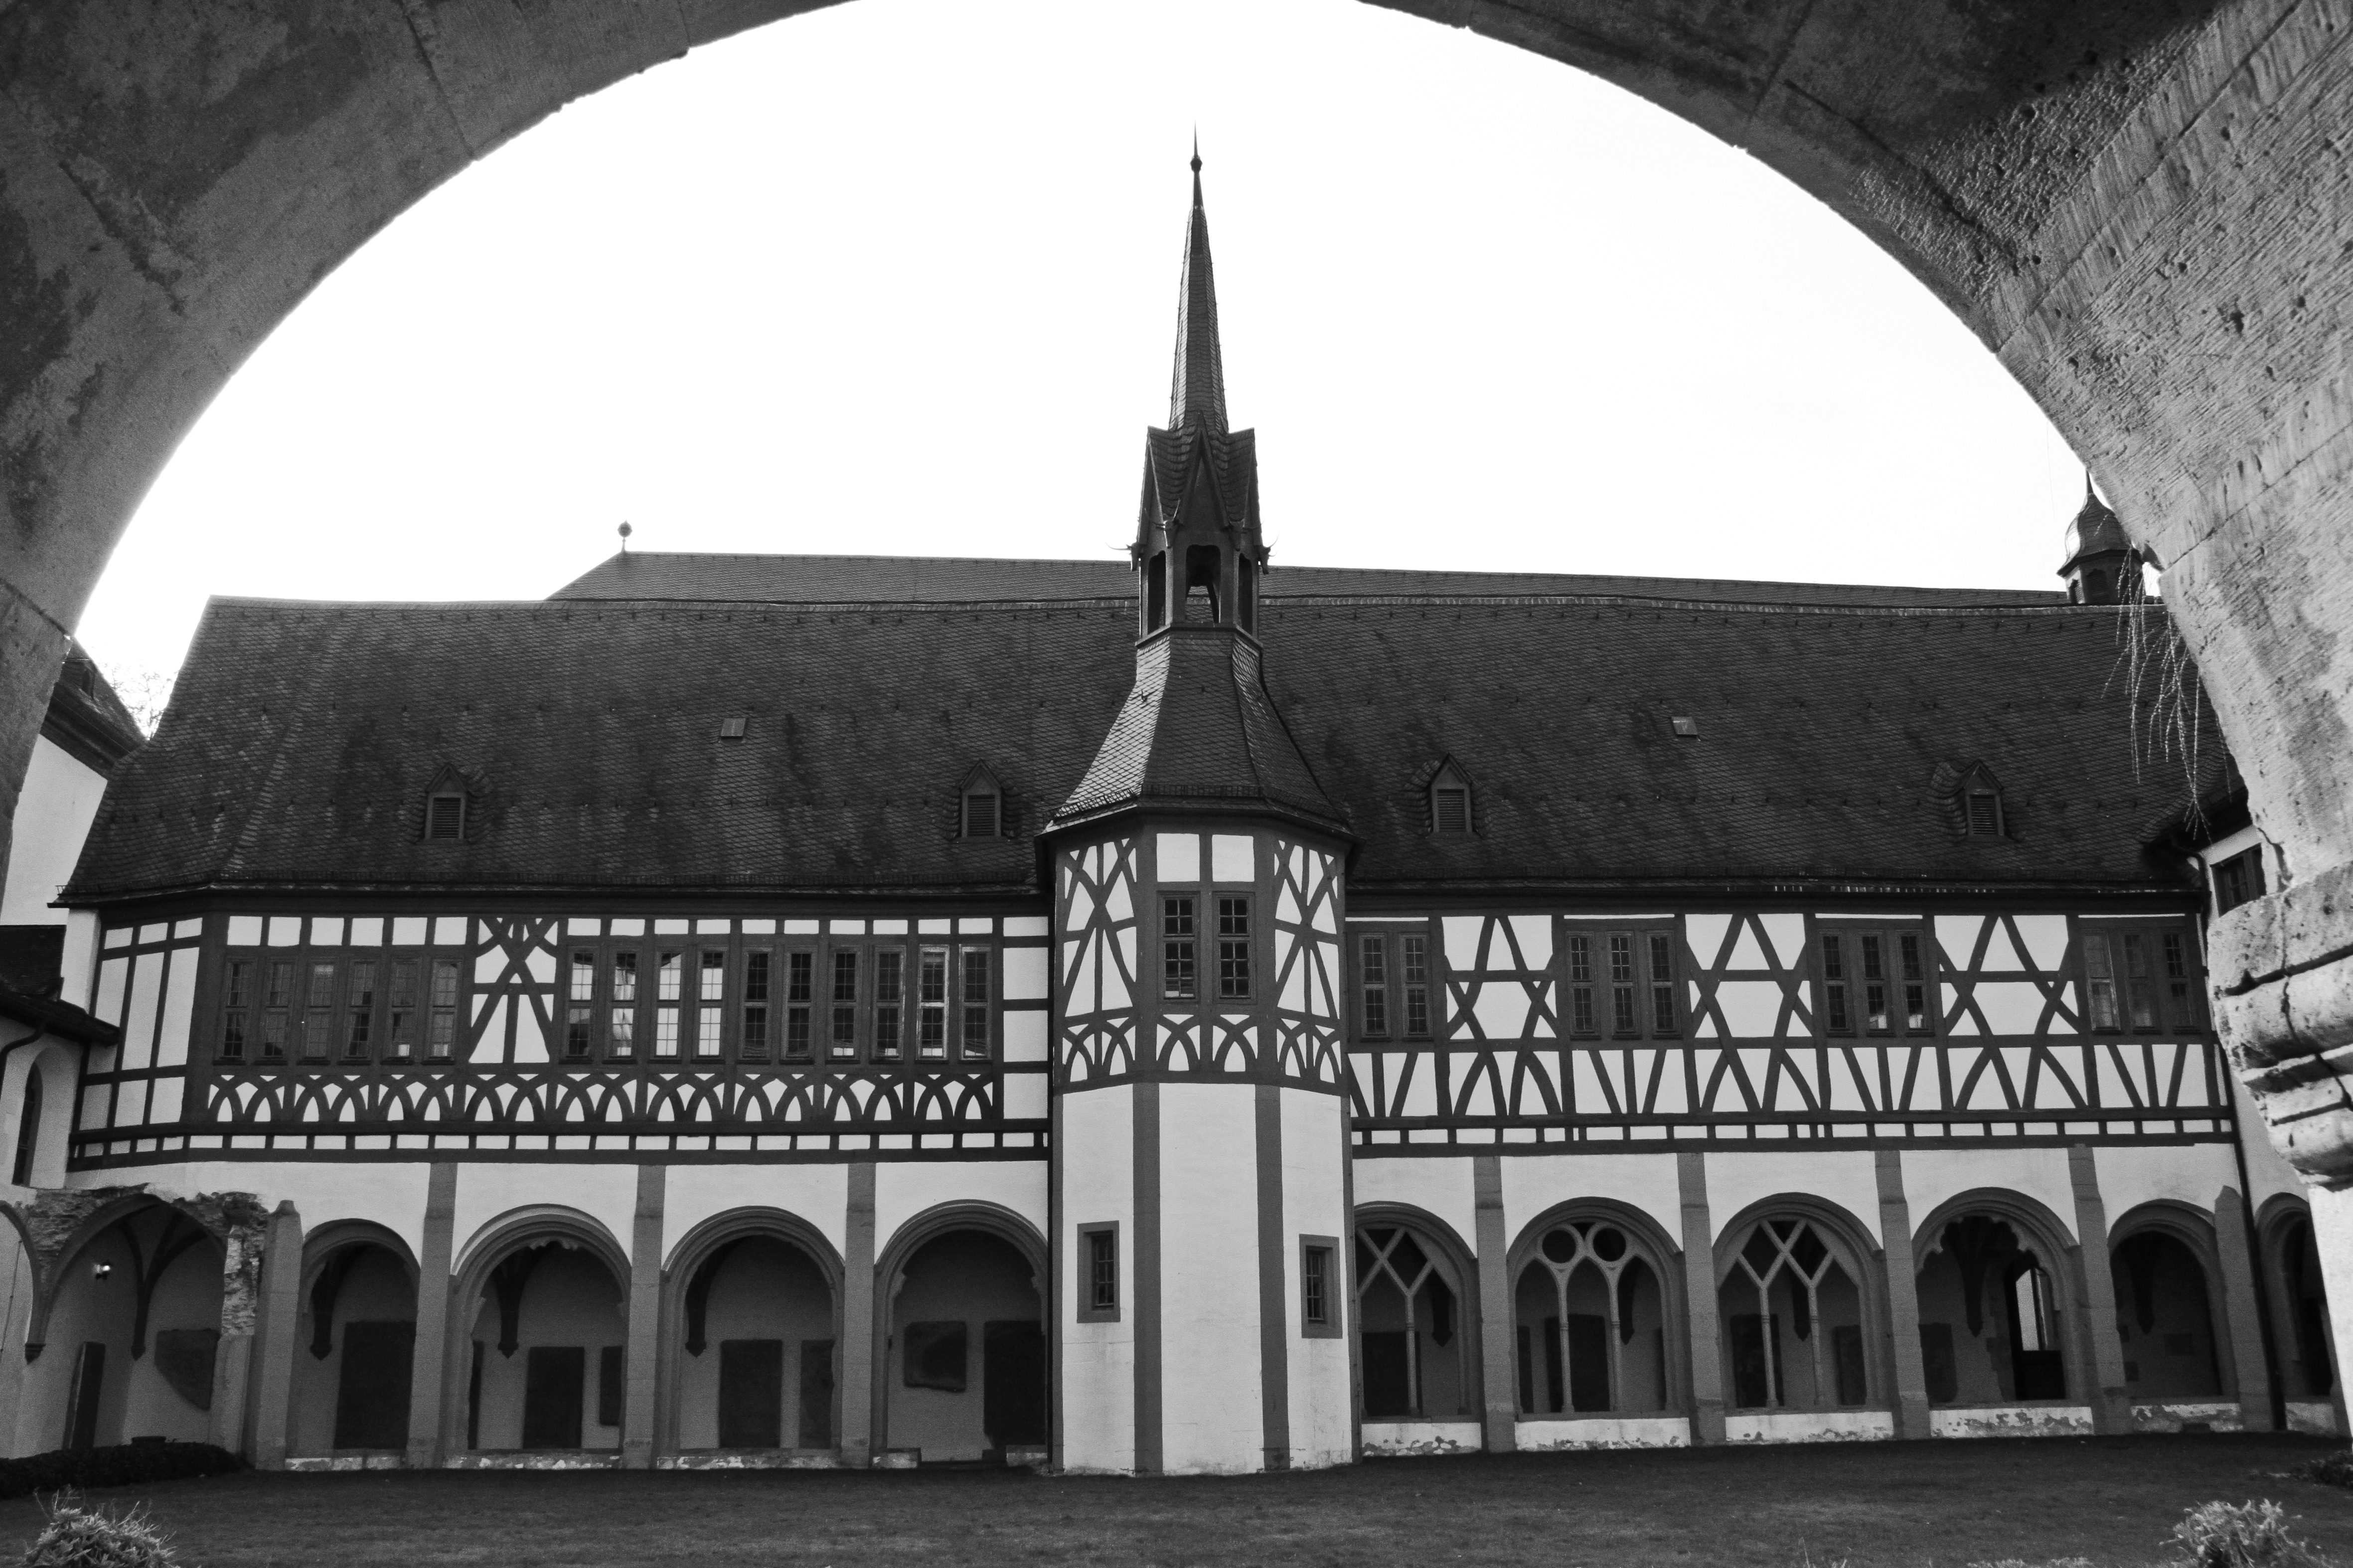 Cloister courtyard by UdoChristmann